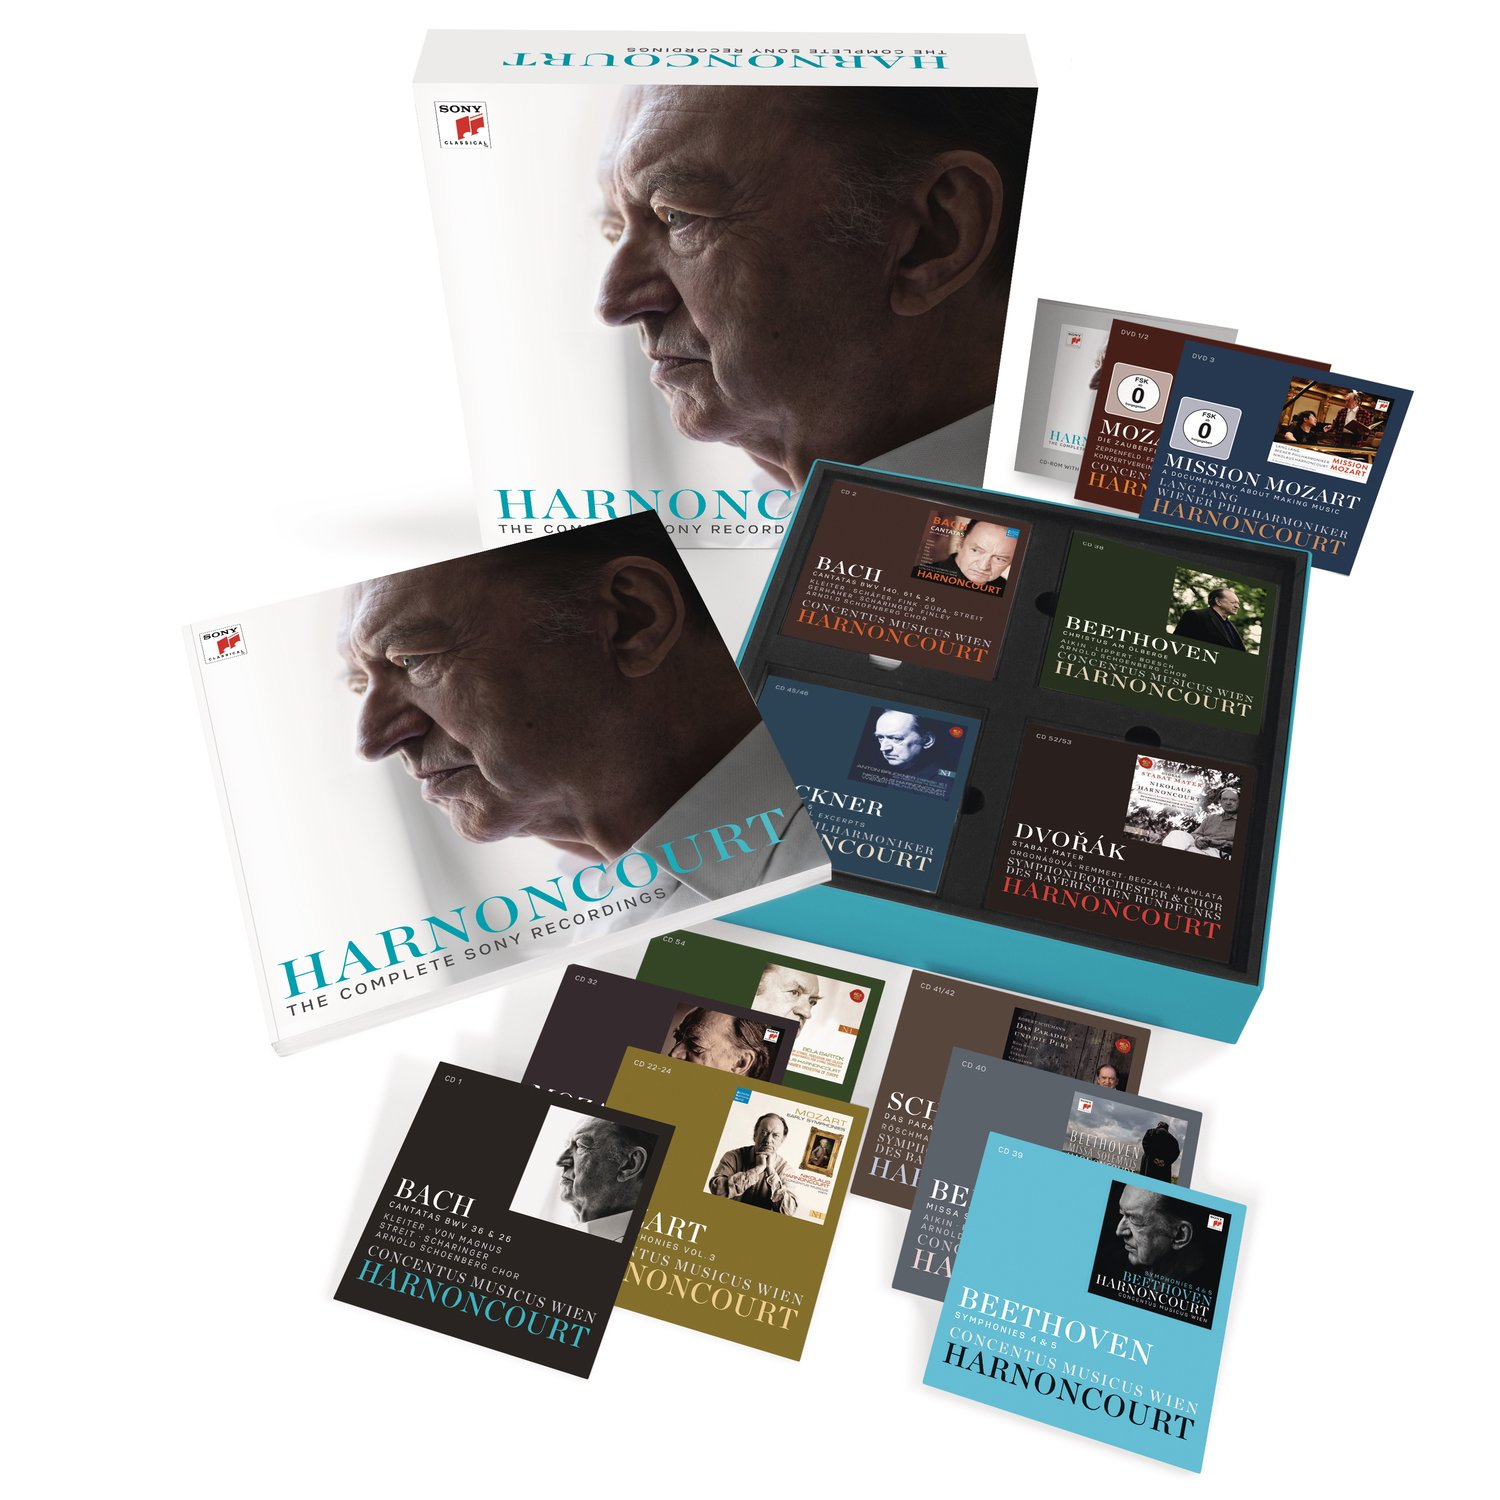 Nikolaus Harnoncourt Various The Complete Voucer 3second 30 Persen Sony Recordings Music